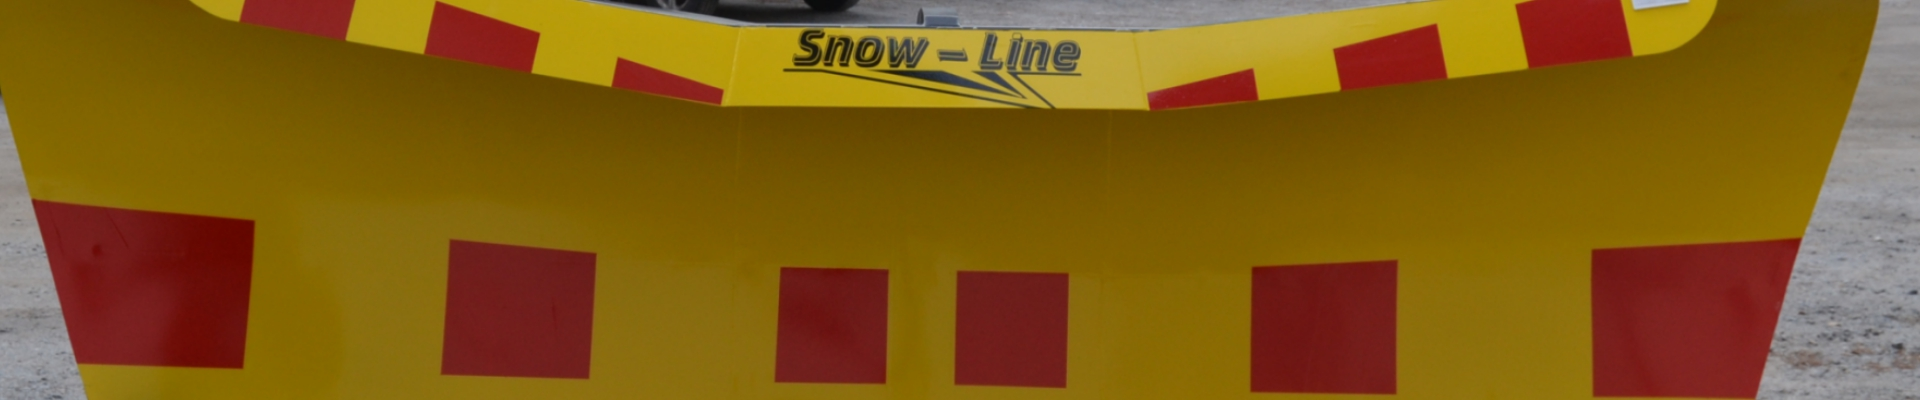 Snow-Line.   Snowplow.   Lumiaura.   Made in Finland.